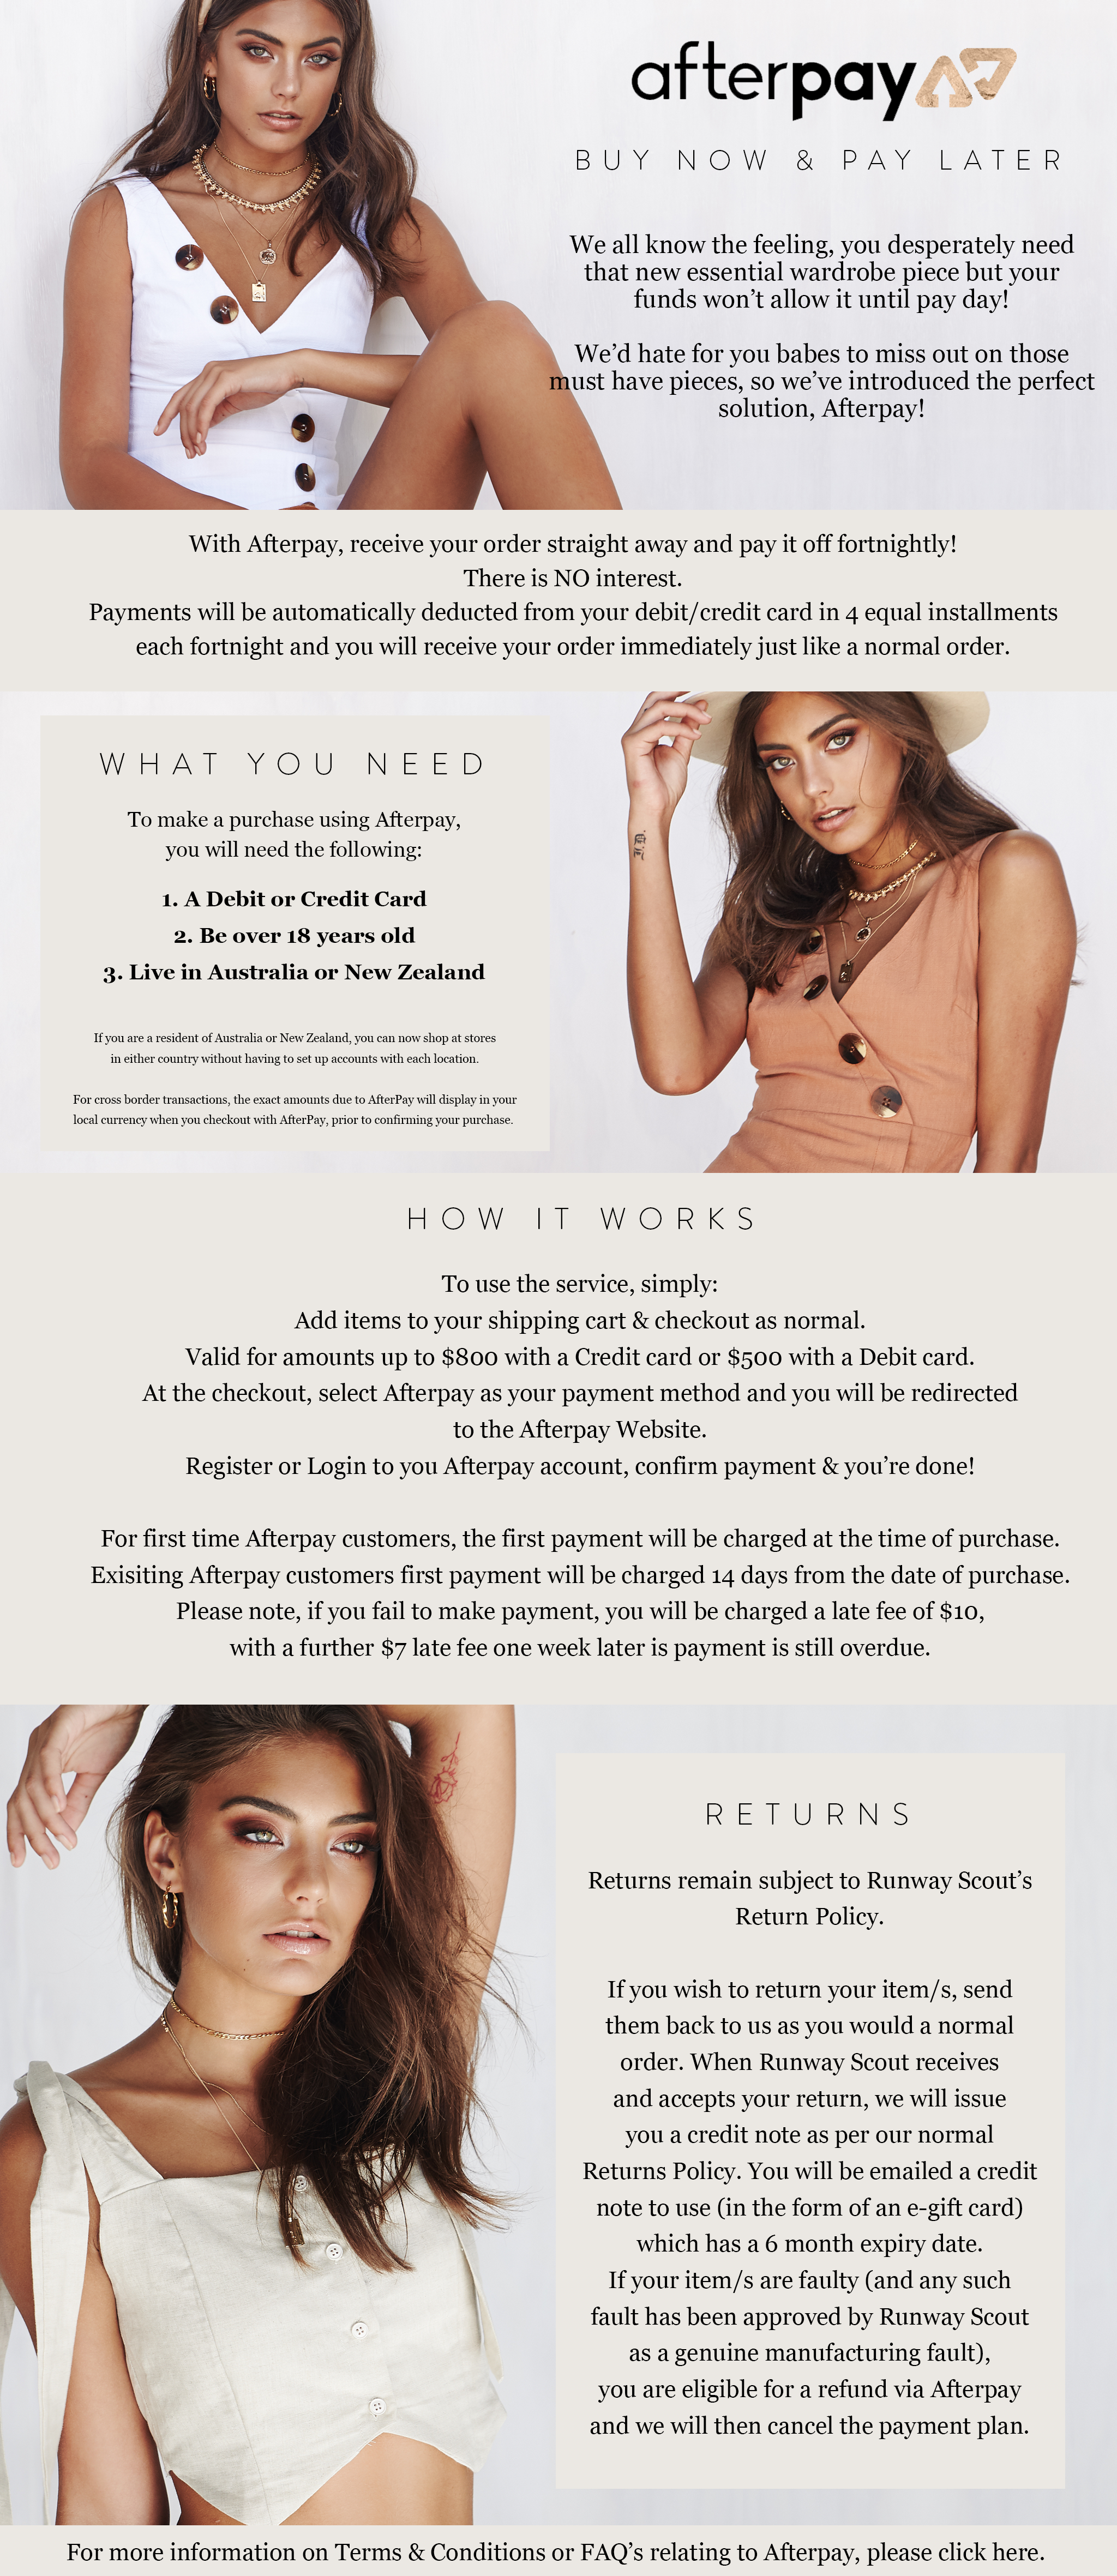 Afterpay - Buy Now, Pay Later, Interest Free! – RunwayScout